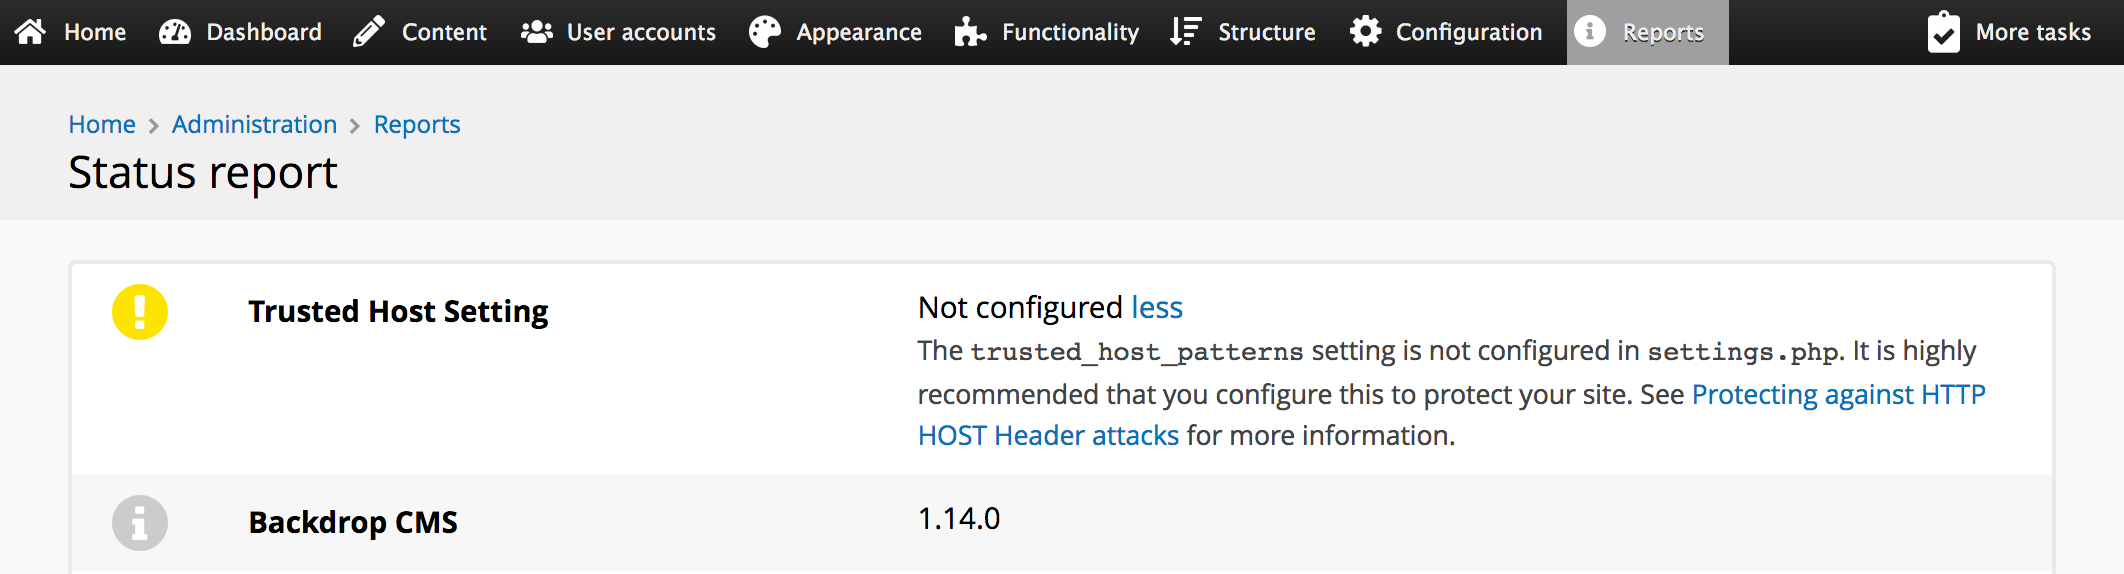 Screenshot of the status report showing the new trusted host patterns setting.